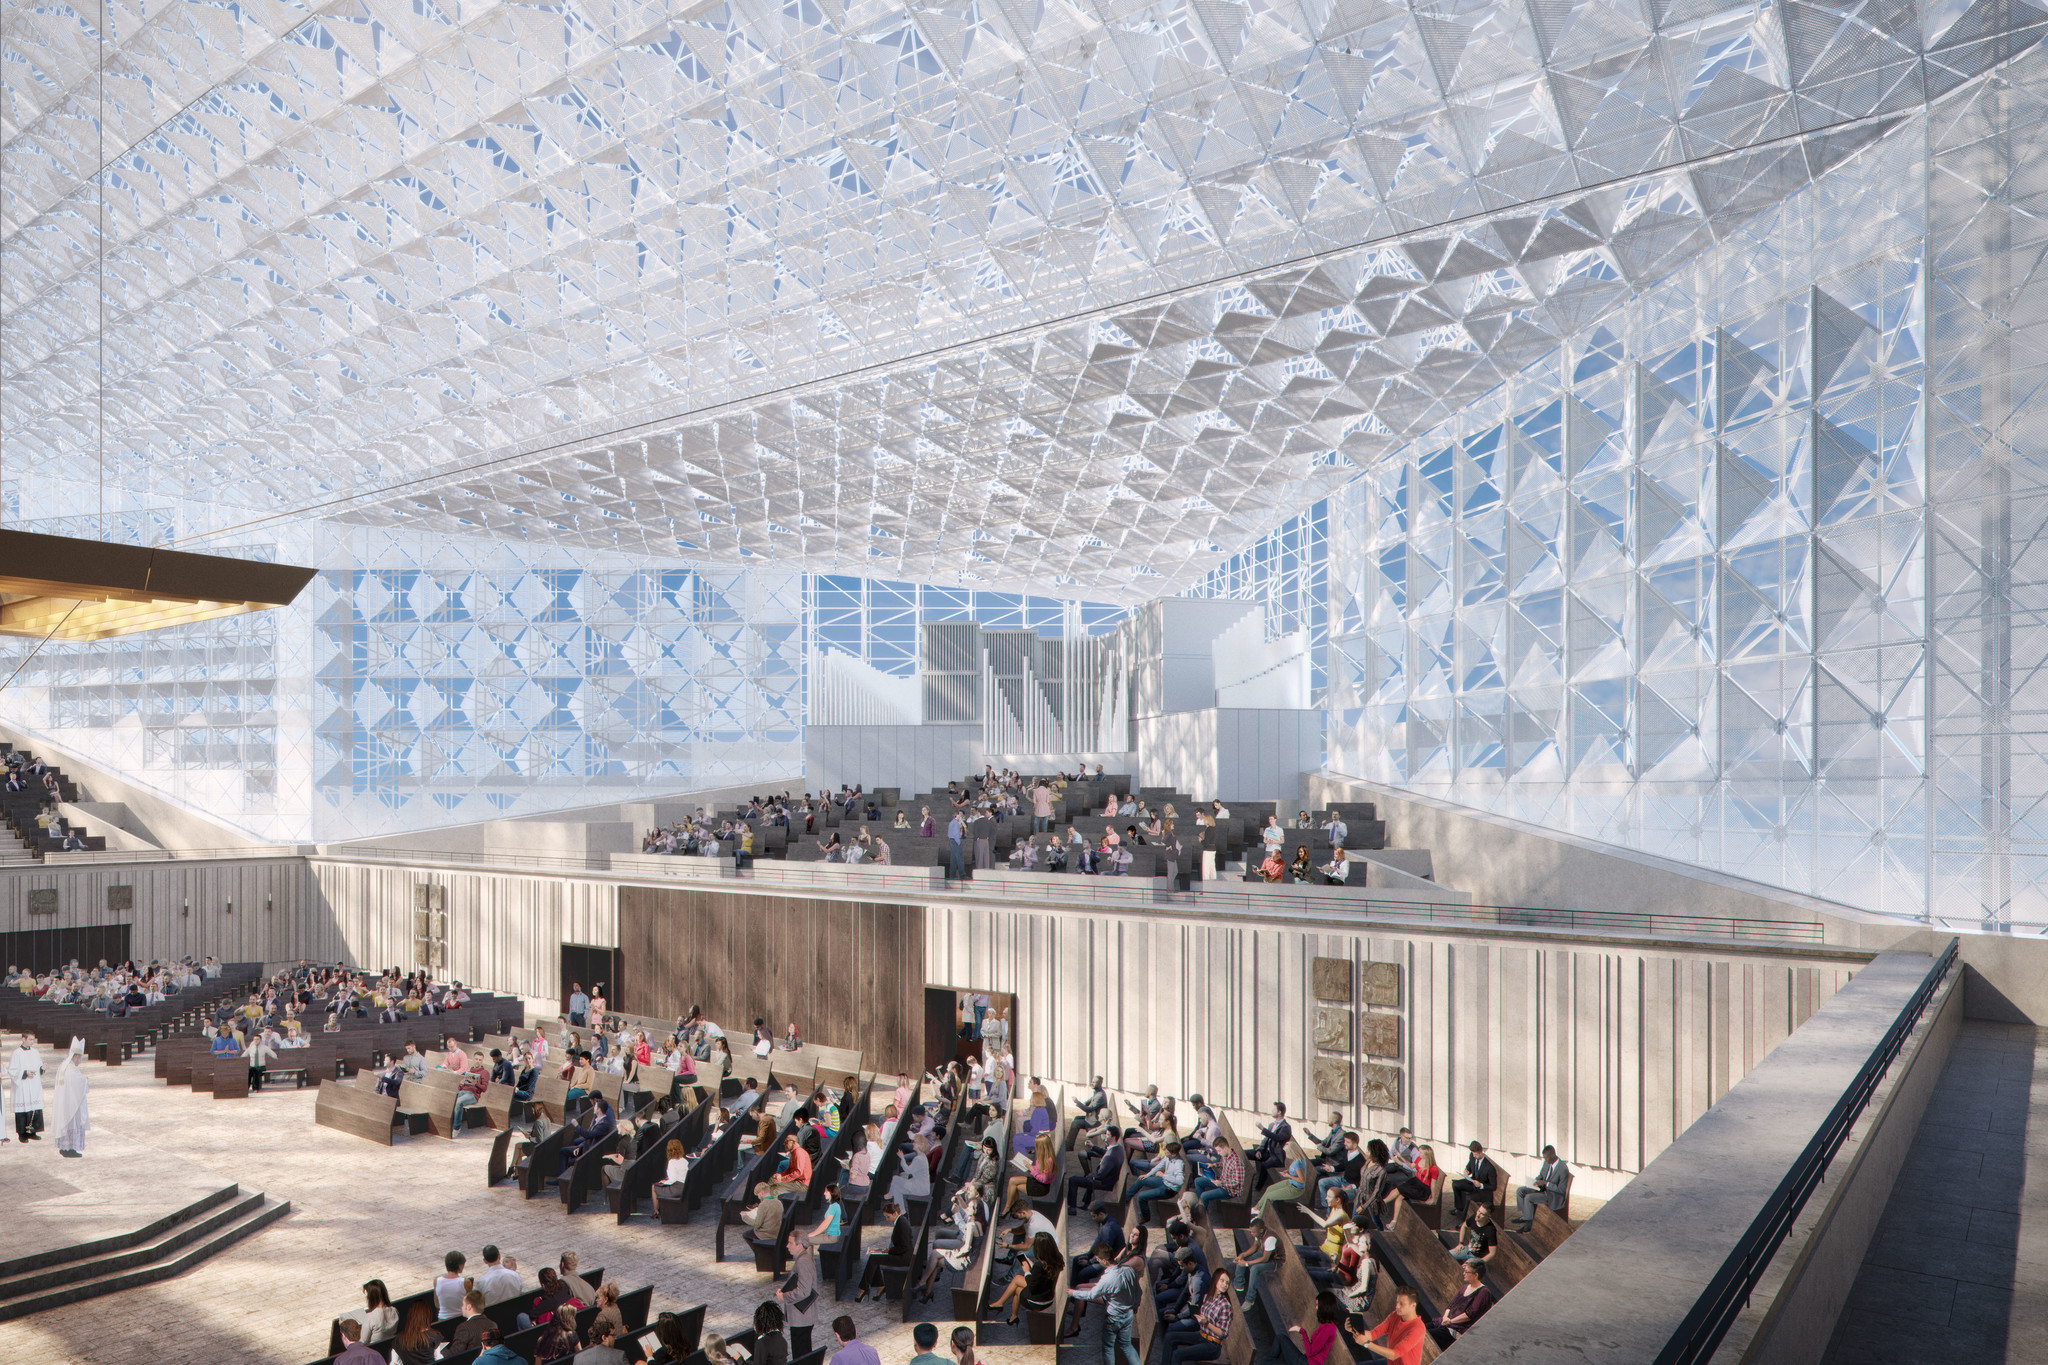 Another view of the Christ Cathedral design proposal by Johnson Fain.